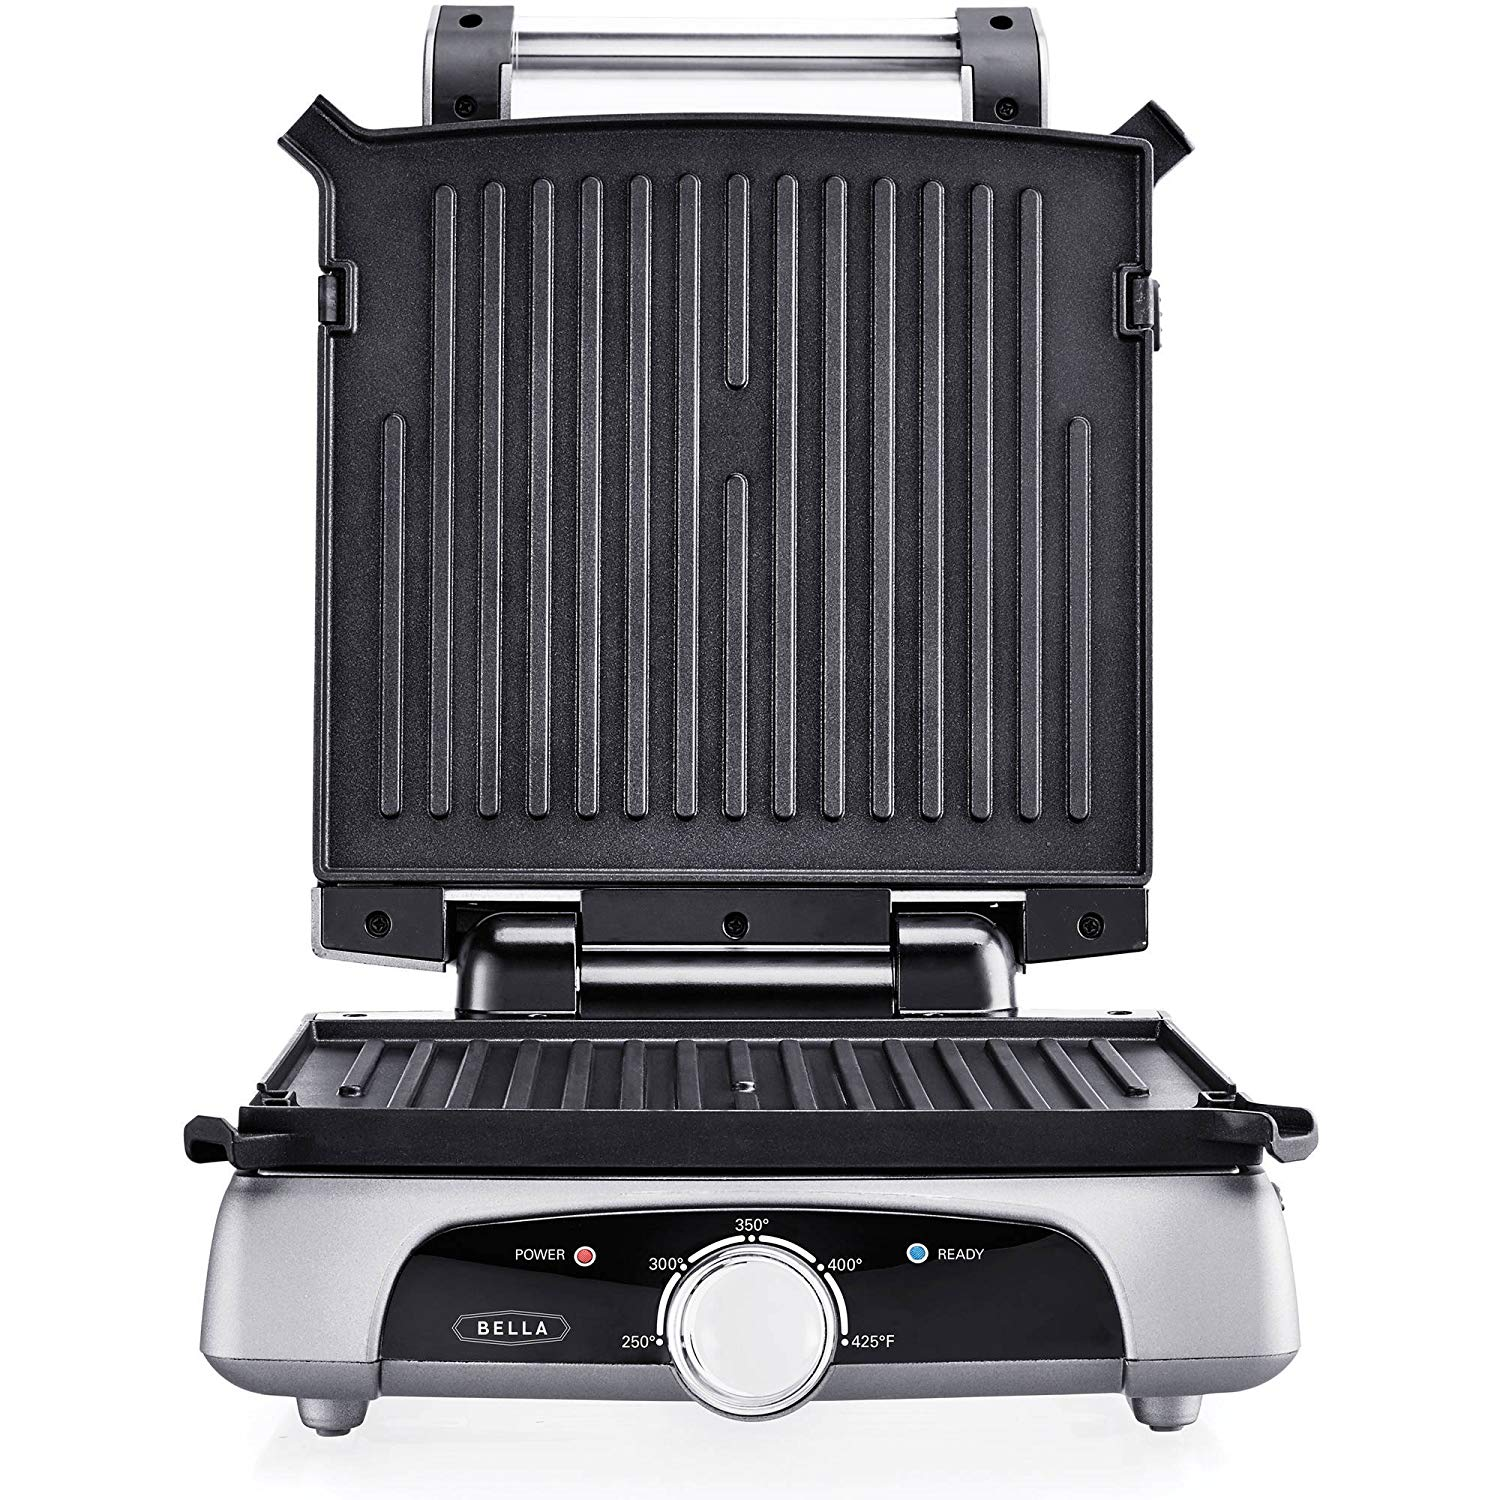 BBQ Clearance - Buy Electric, Charcoal and Propane Grills At Best Prices